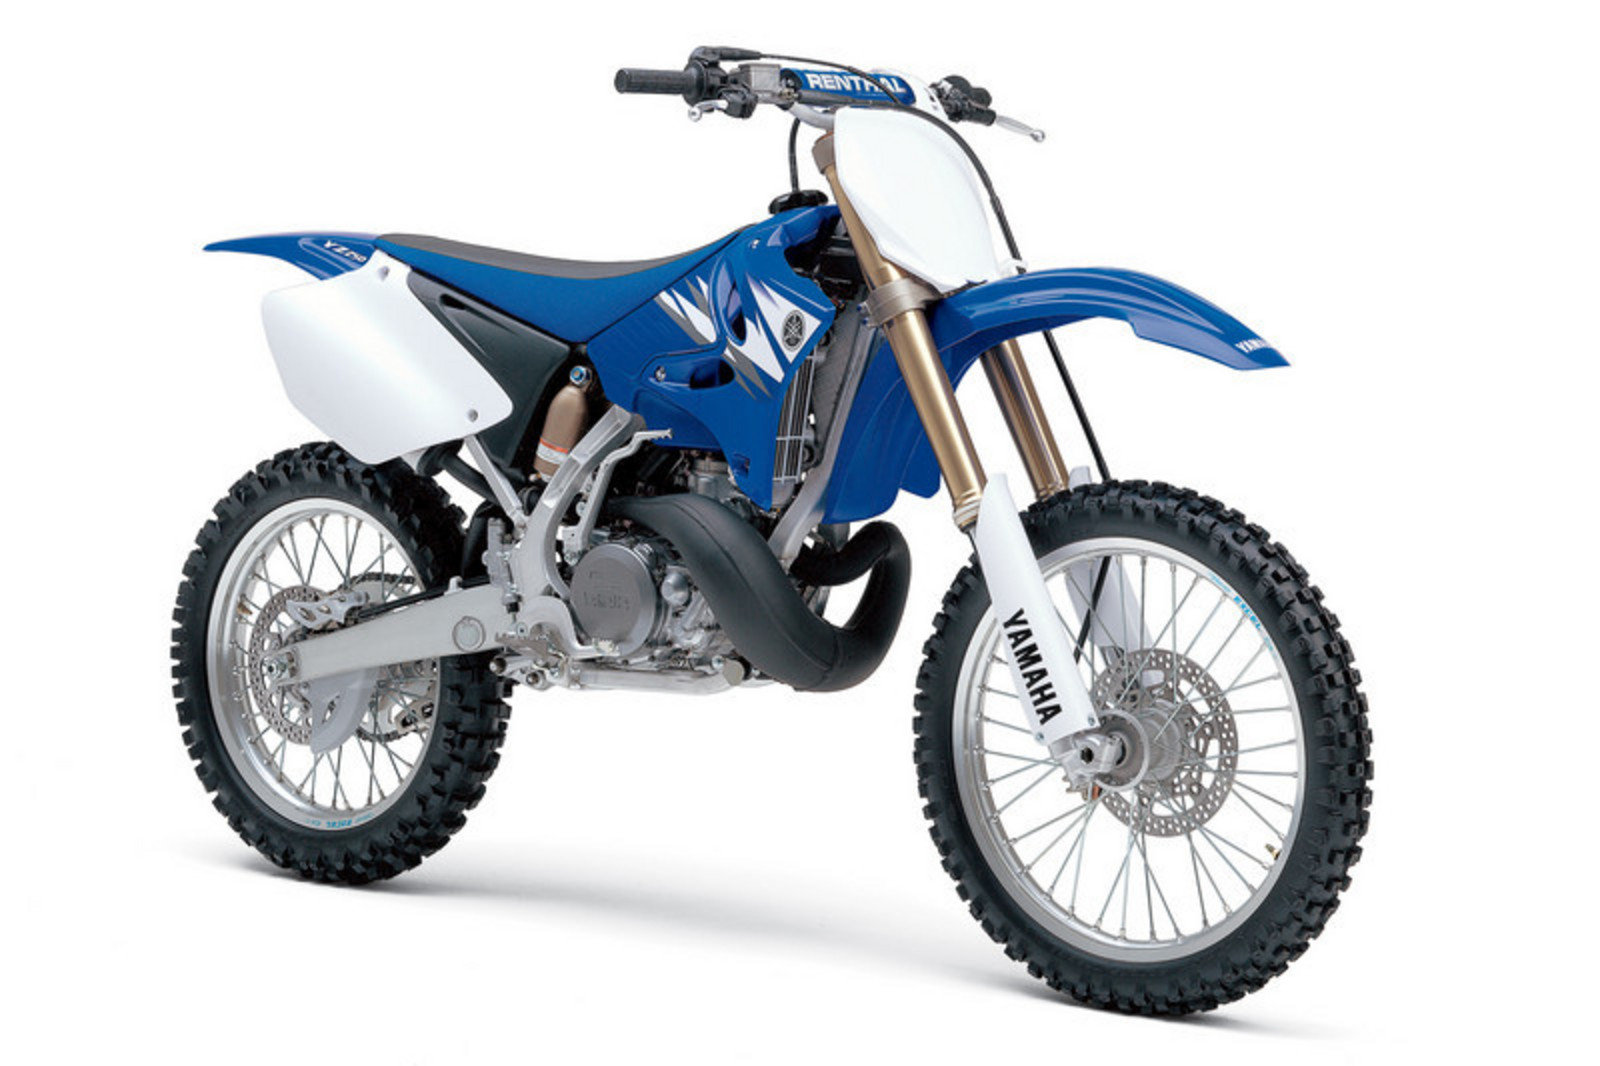 2006 yamaha yz250 review top speed. Black Bedroom Furniture Sets. Home Design Ideas